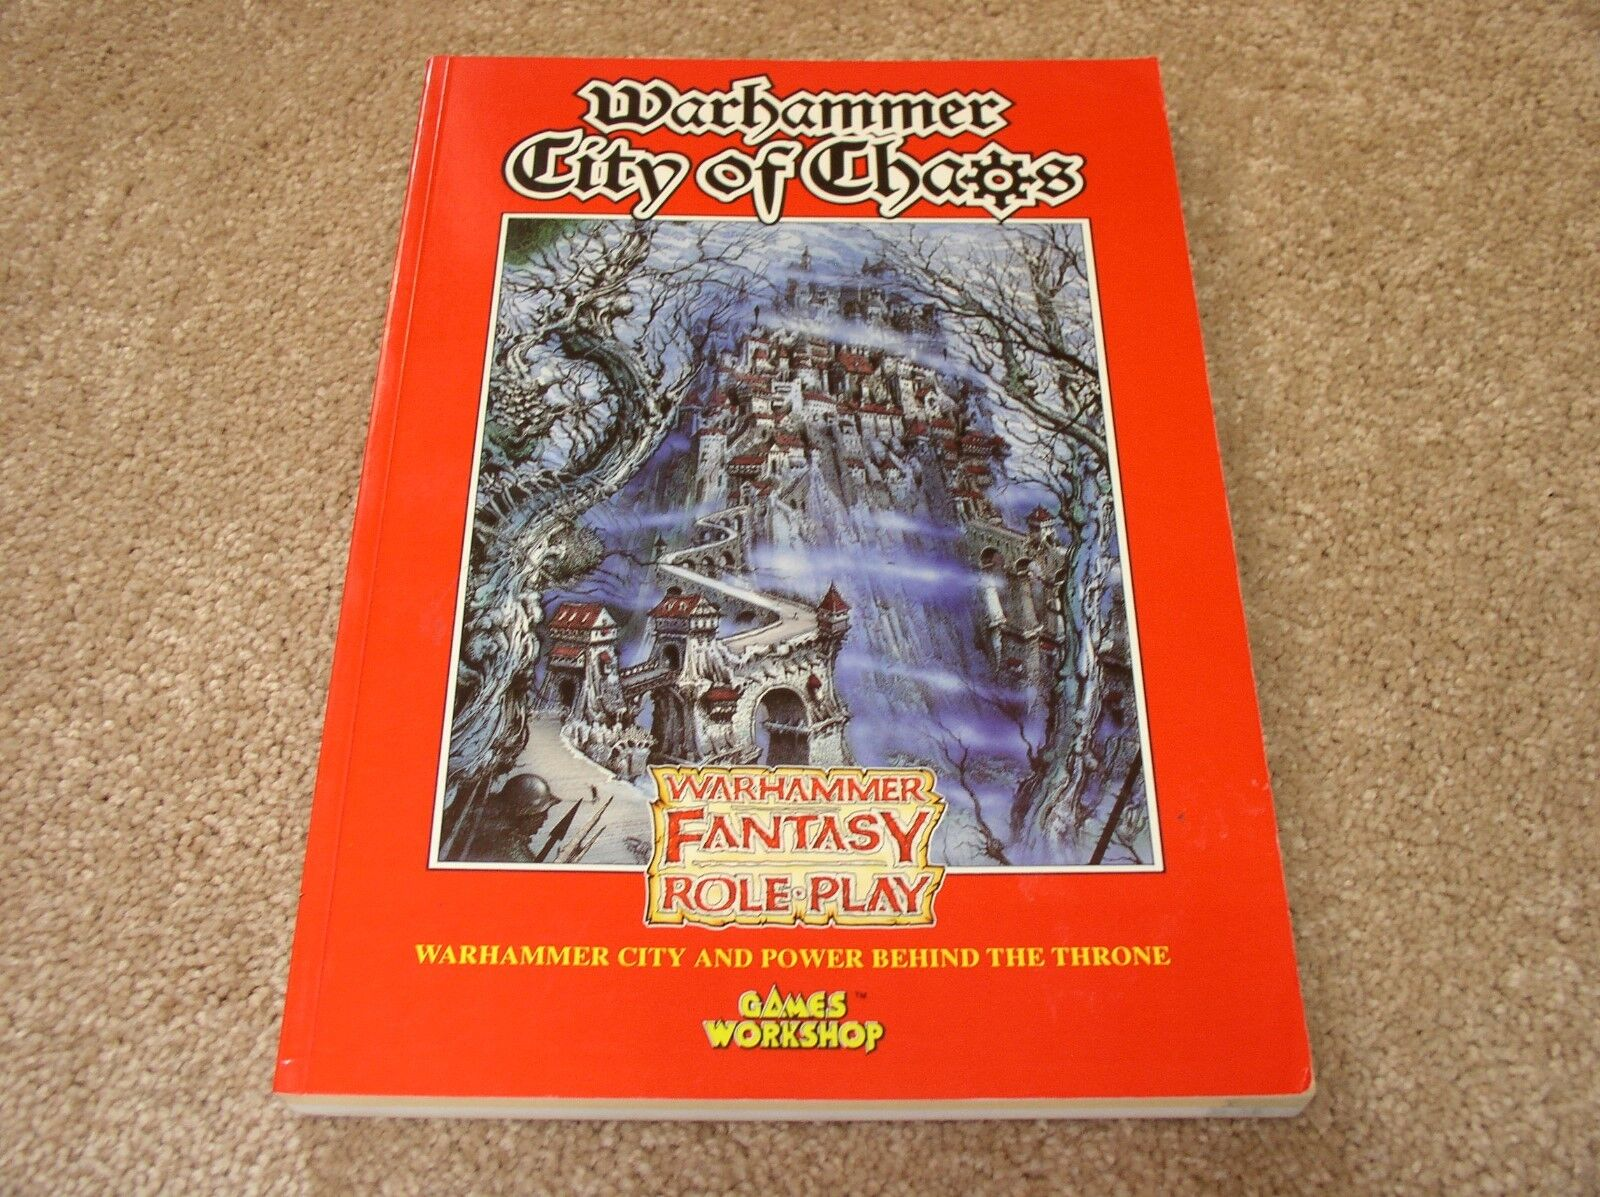 Games Workshop Warhammer City of Chaos softcover